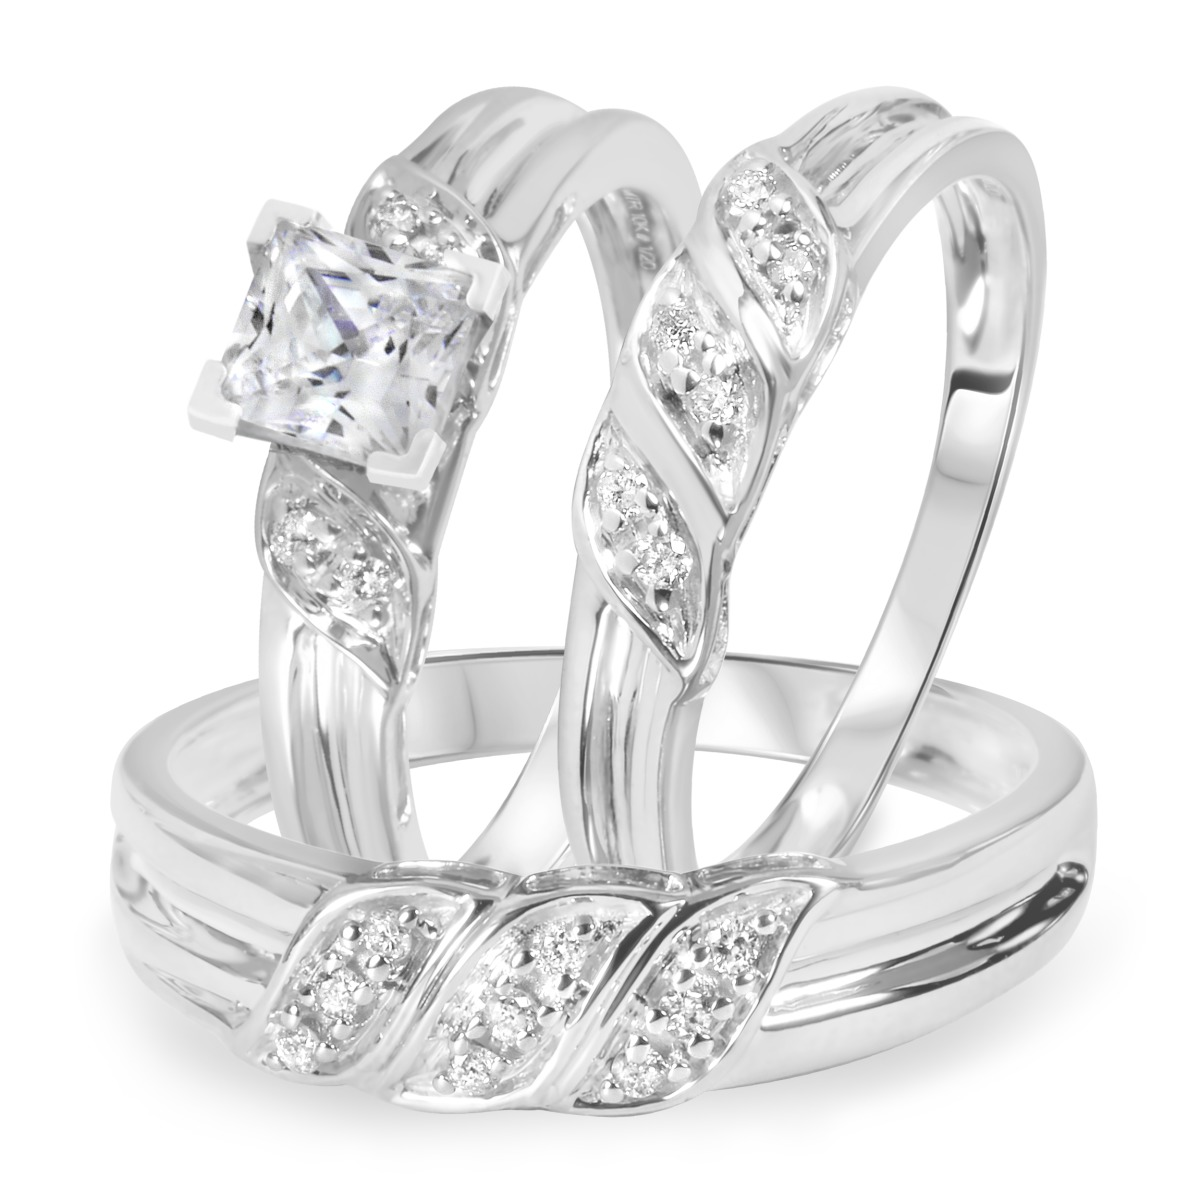 1 1/5 CT. T.W. Diamond Ladies Engagement Ring, Wedding Band, Men's Wedding Band Matching Set 14K White Gold